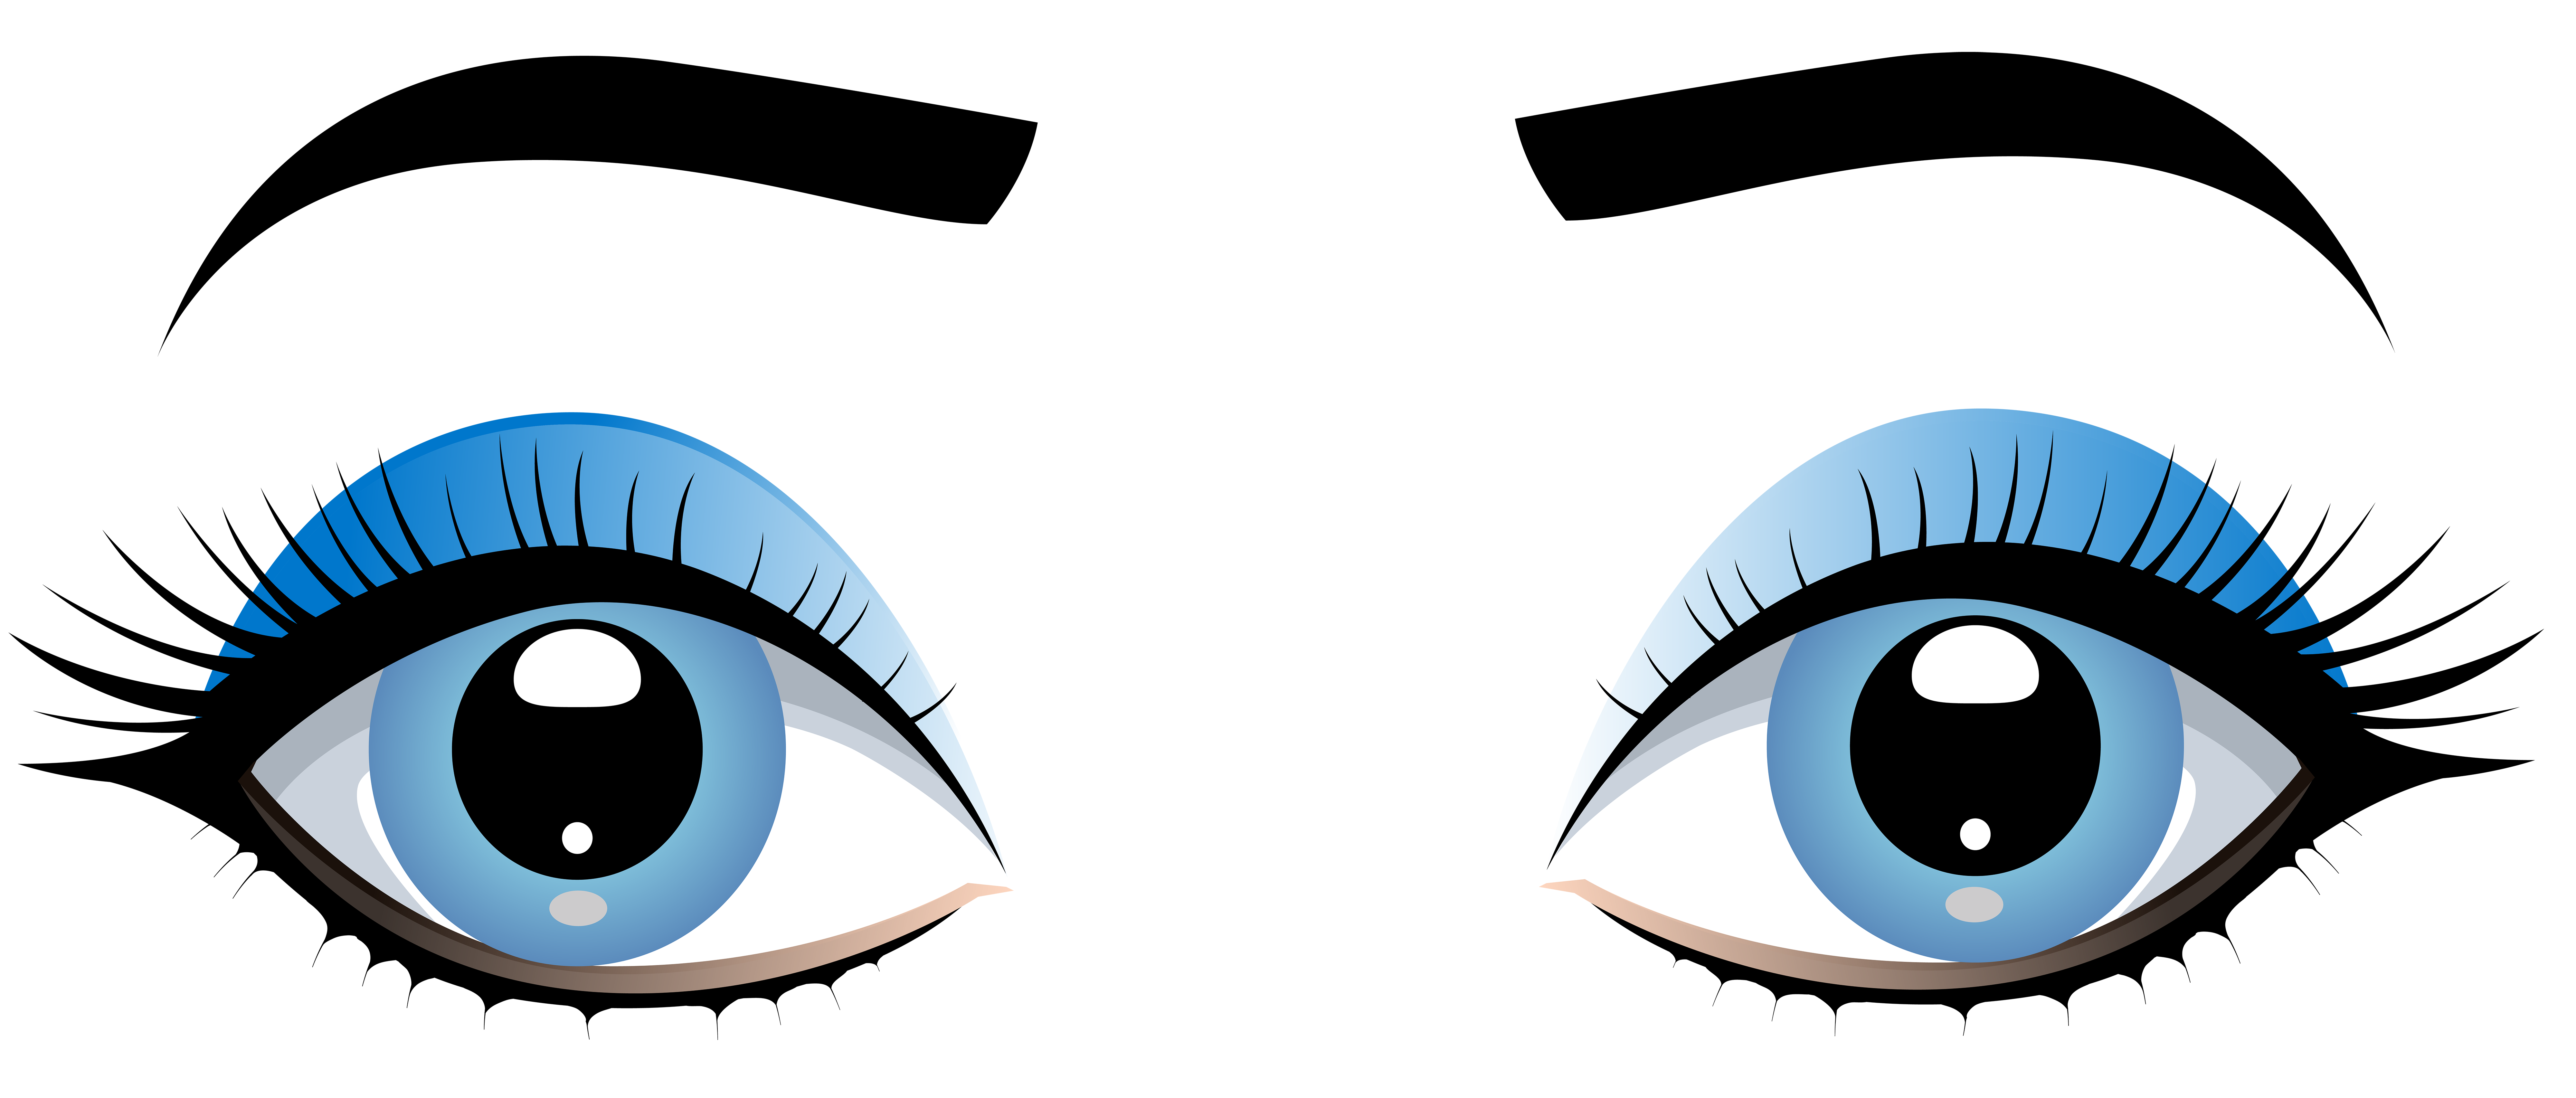 8000x3410 Blue Eyes Clipart Angry Eyebrow